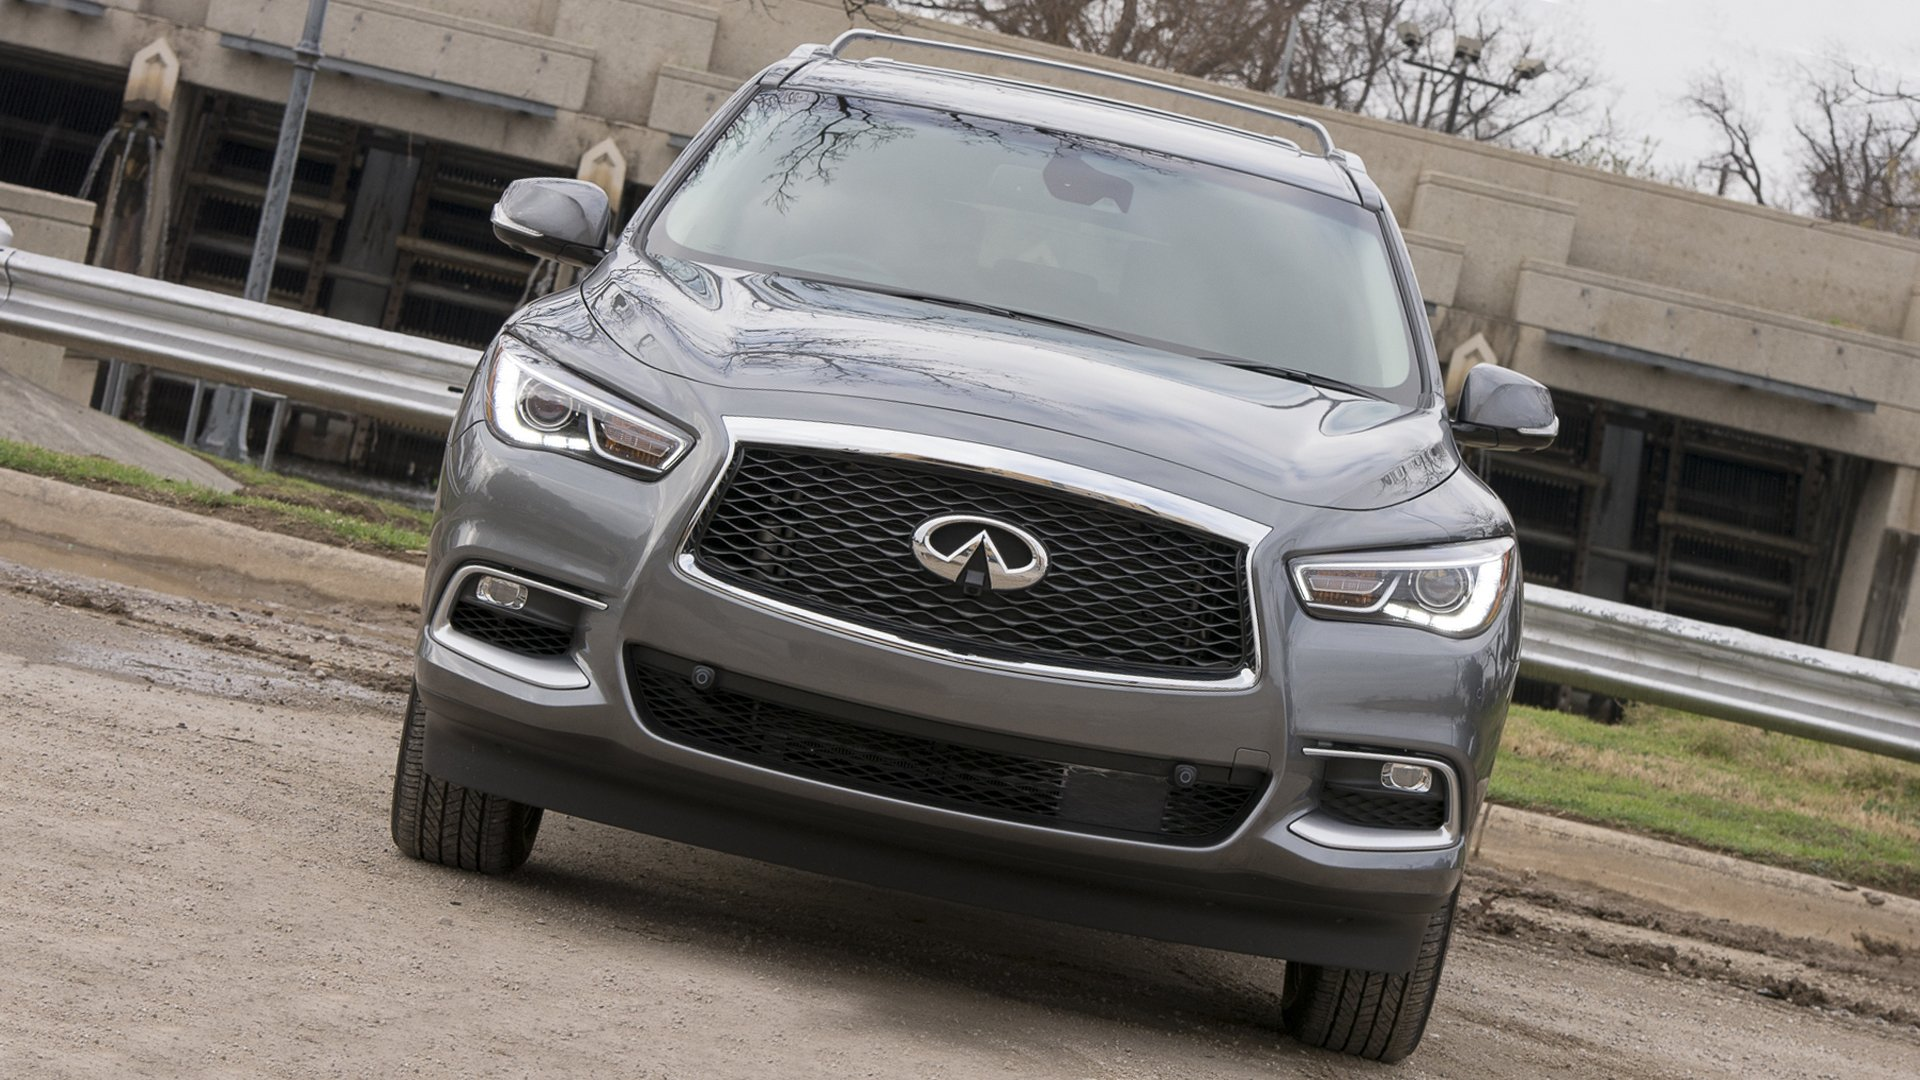 Infiniti QX60 2018 Front View HD